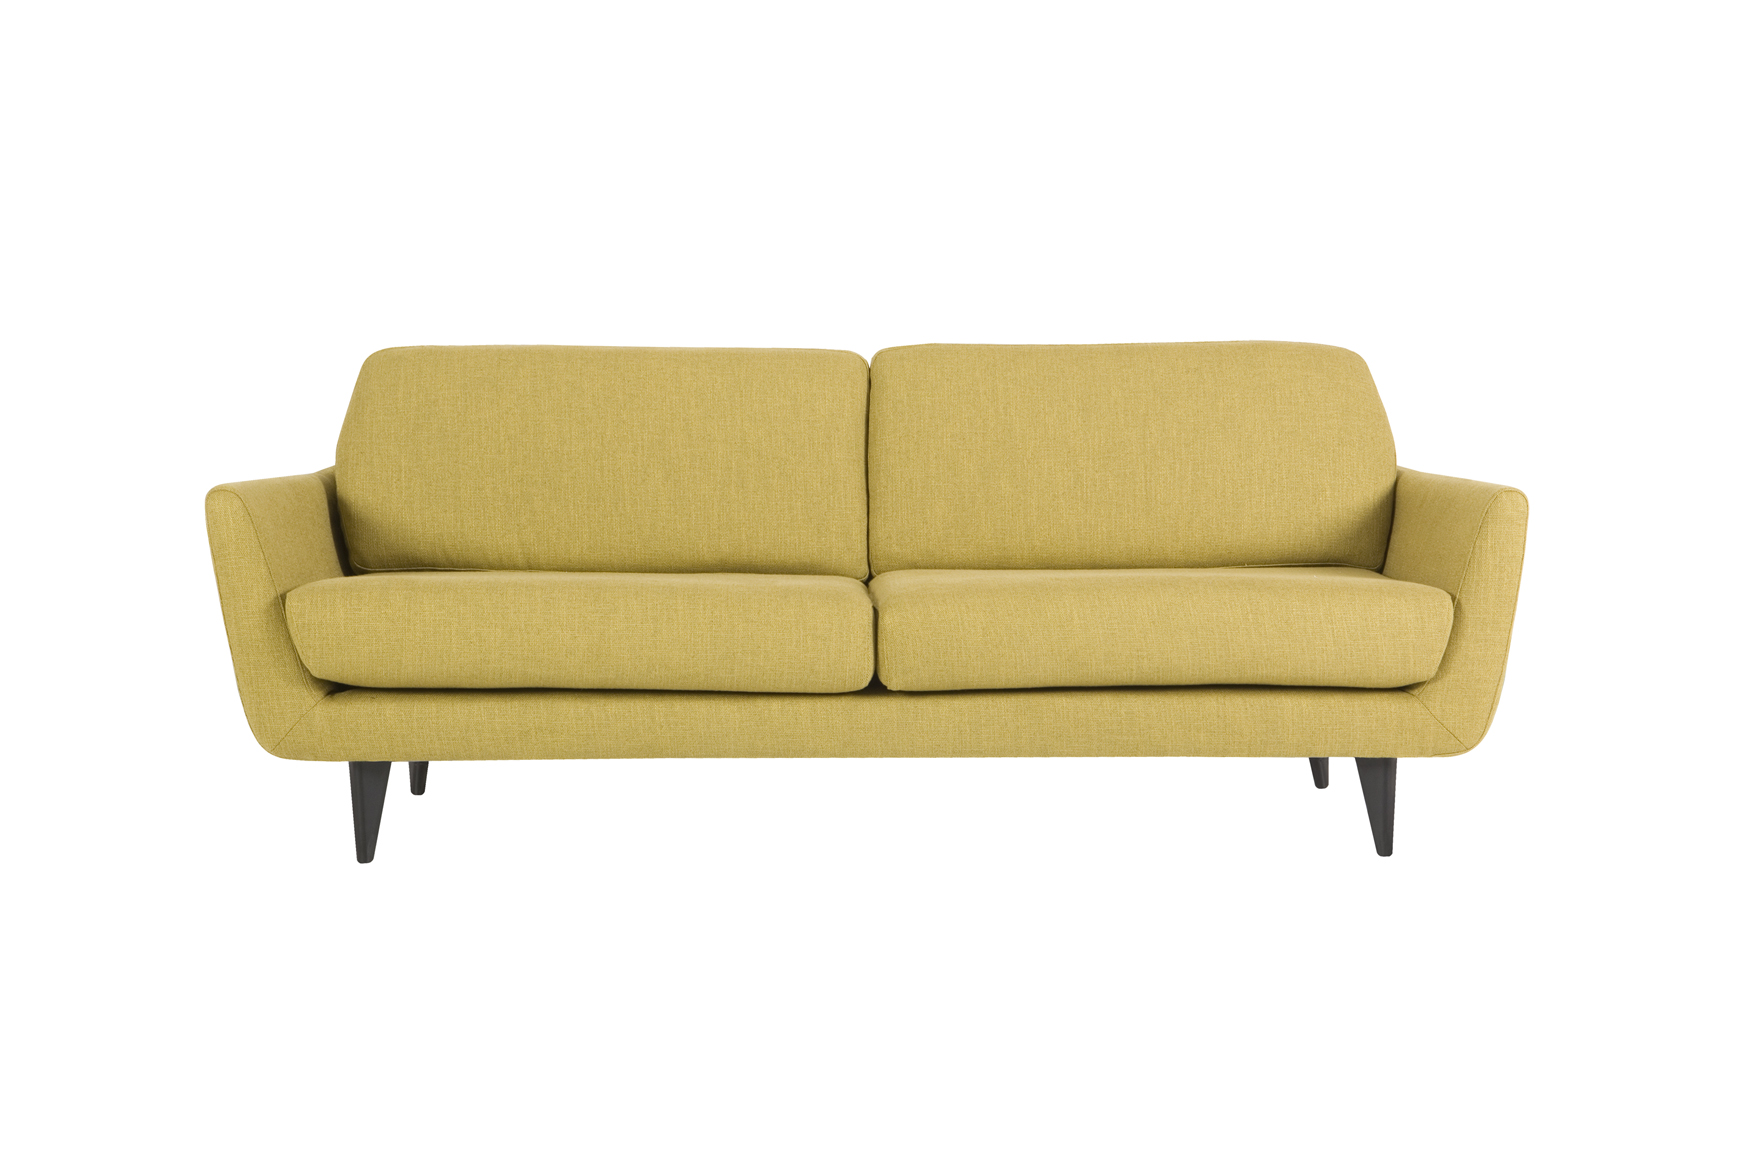 Ruccola sofa